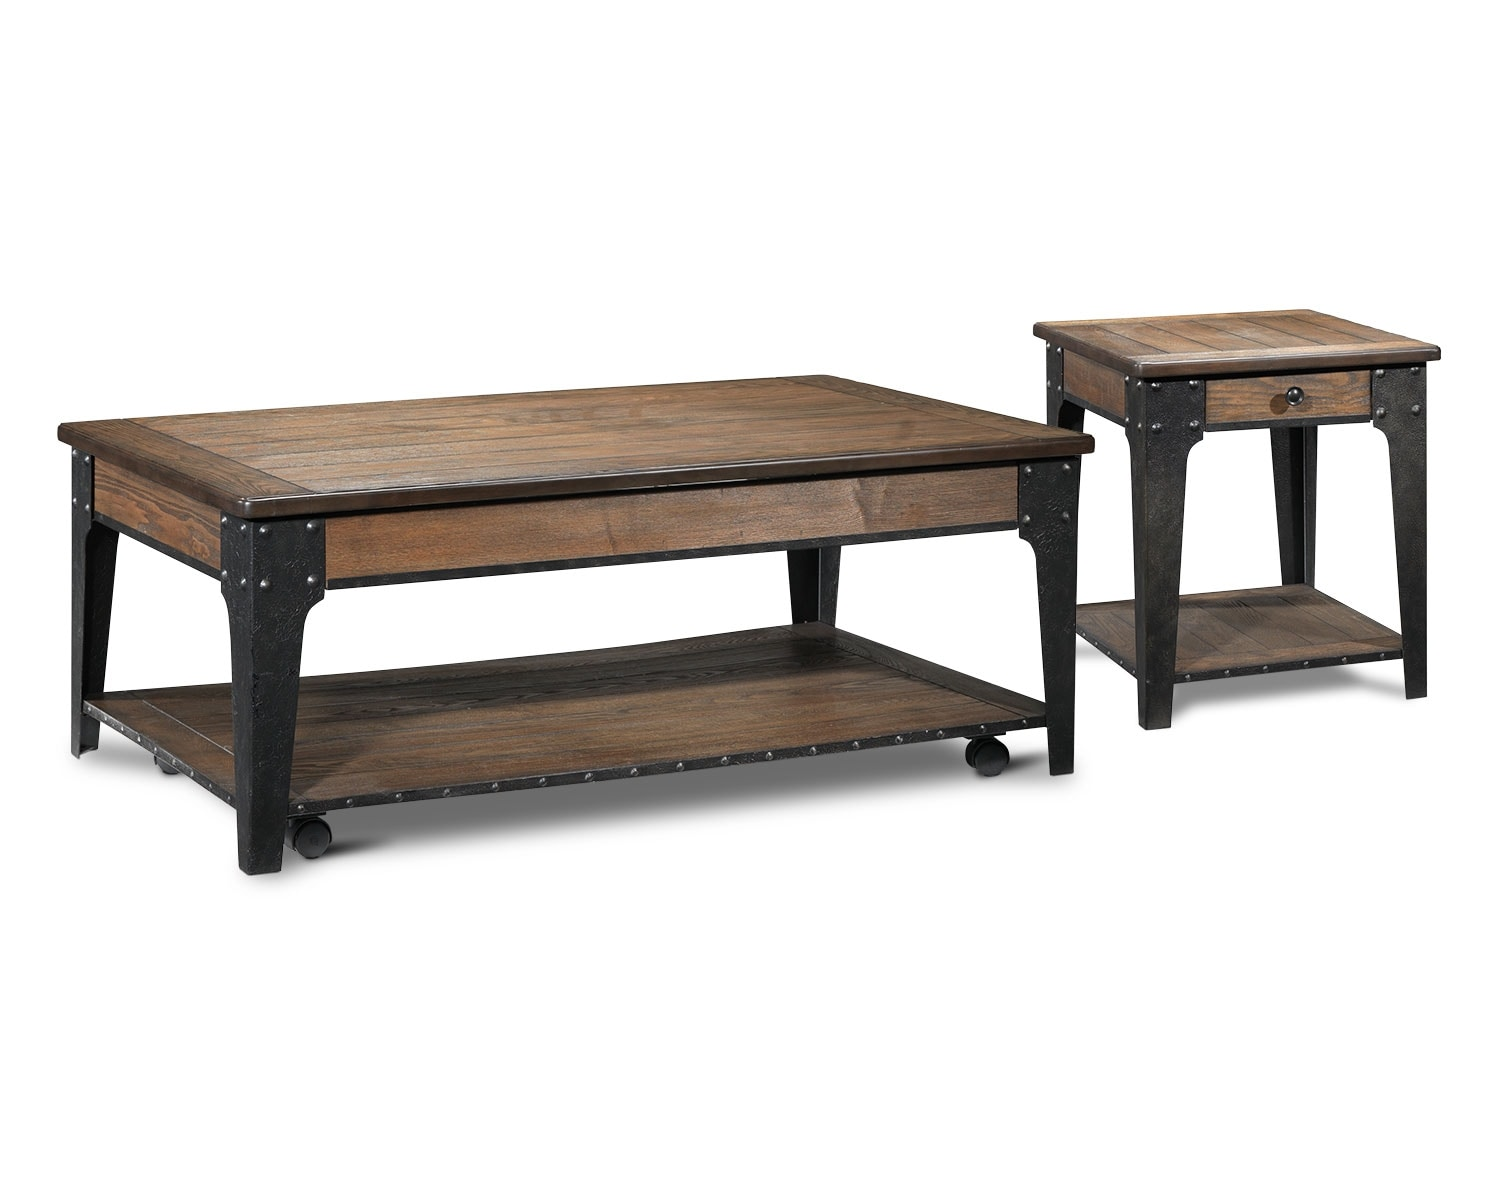 The Lakehurst Table Collection